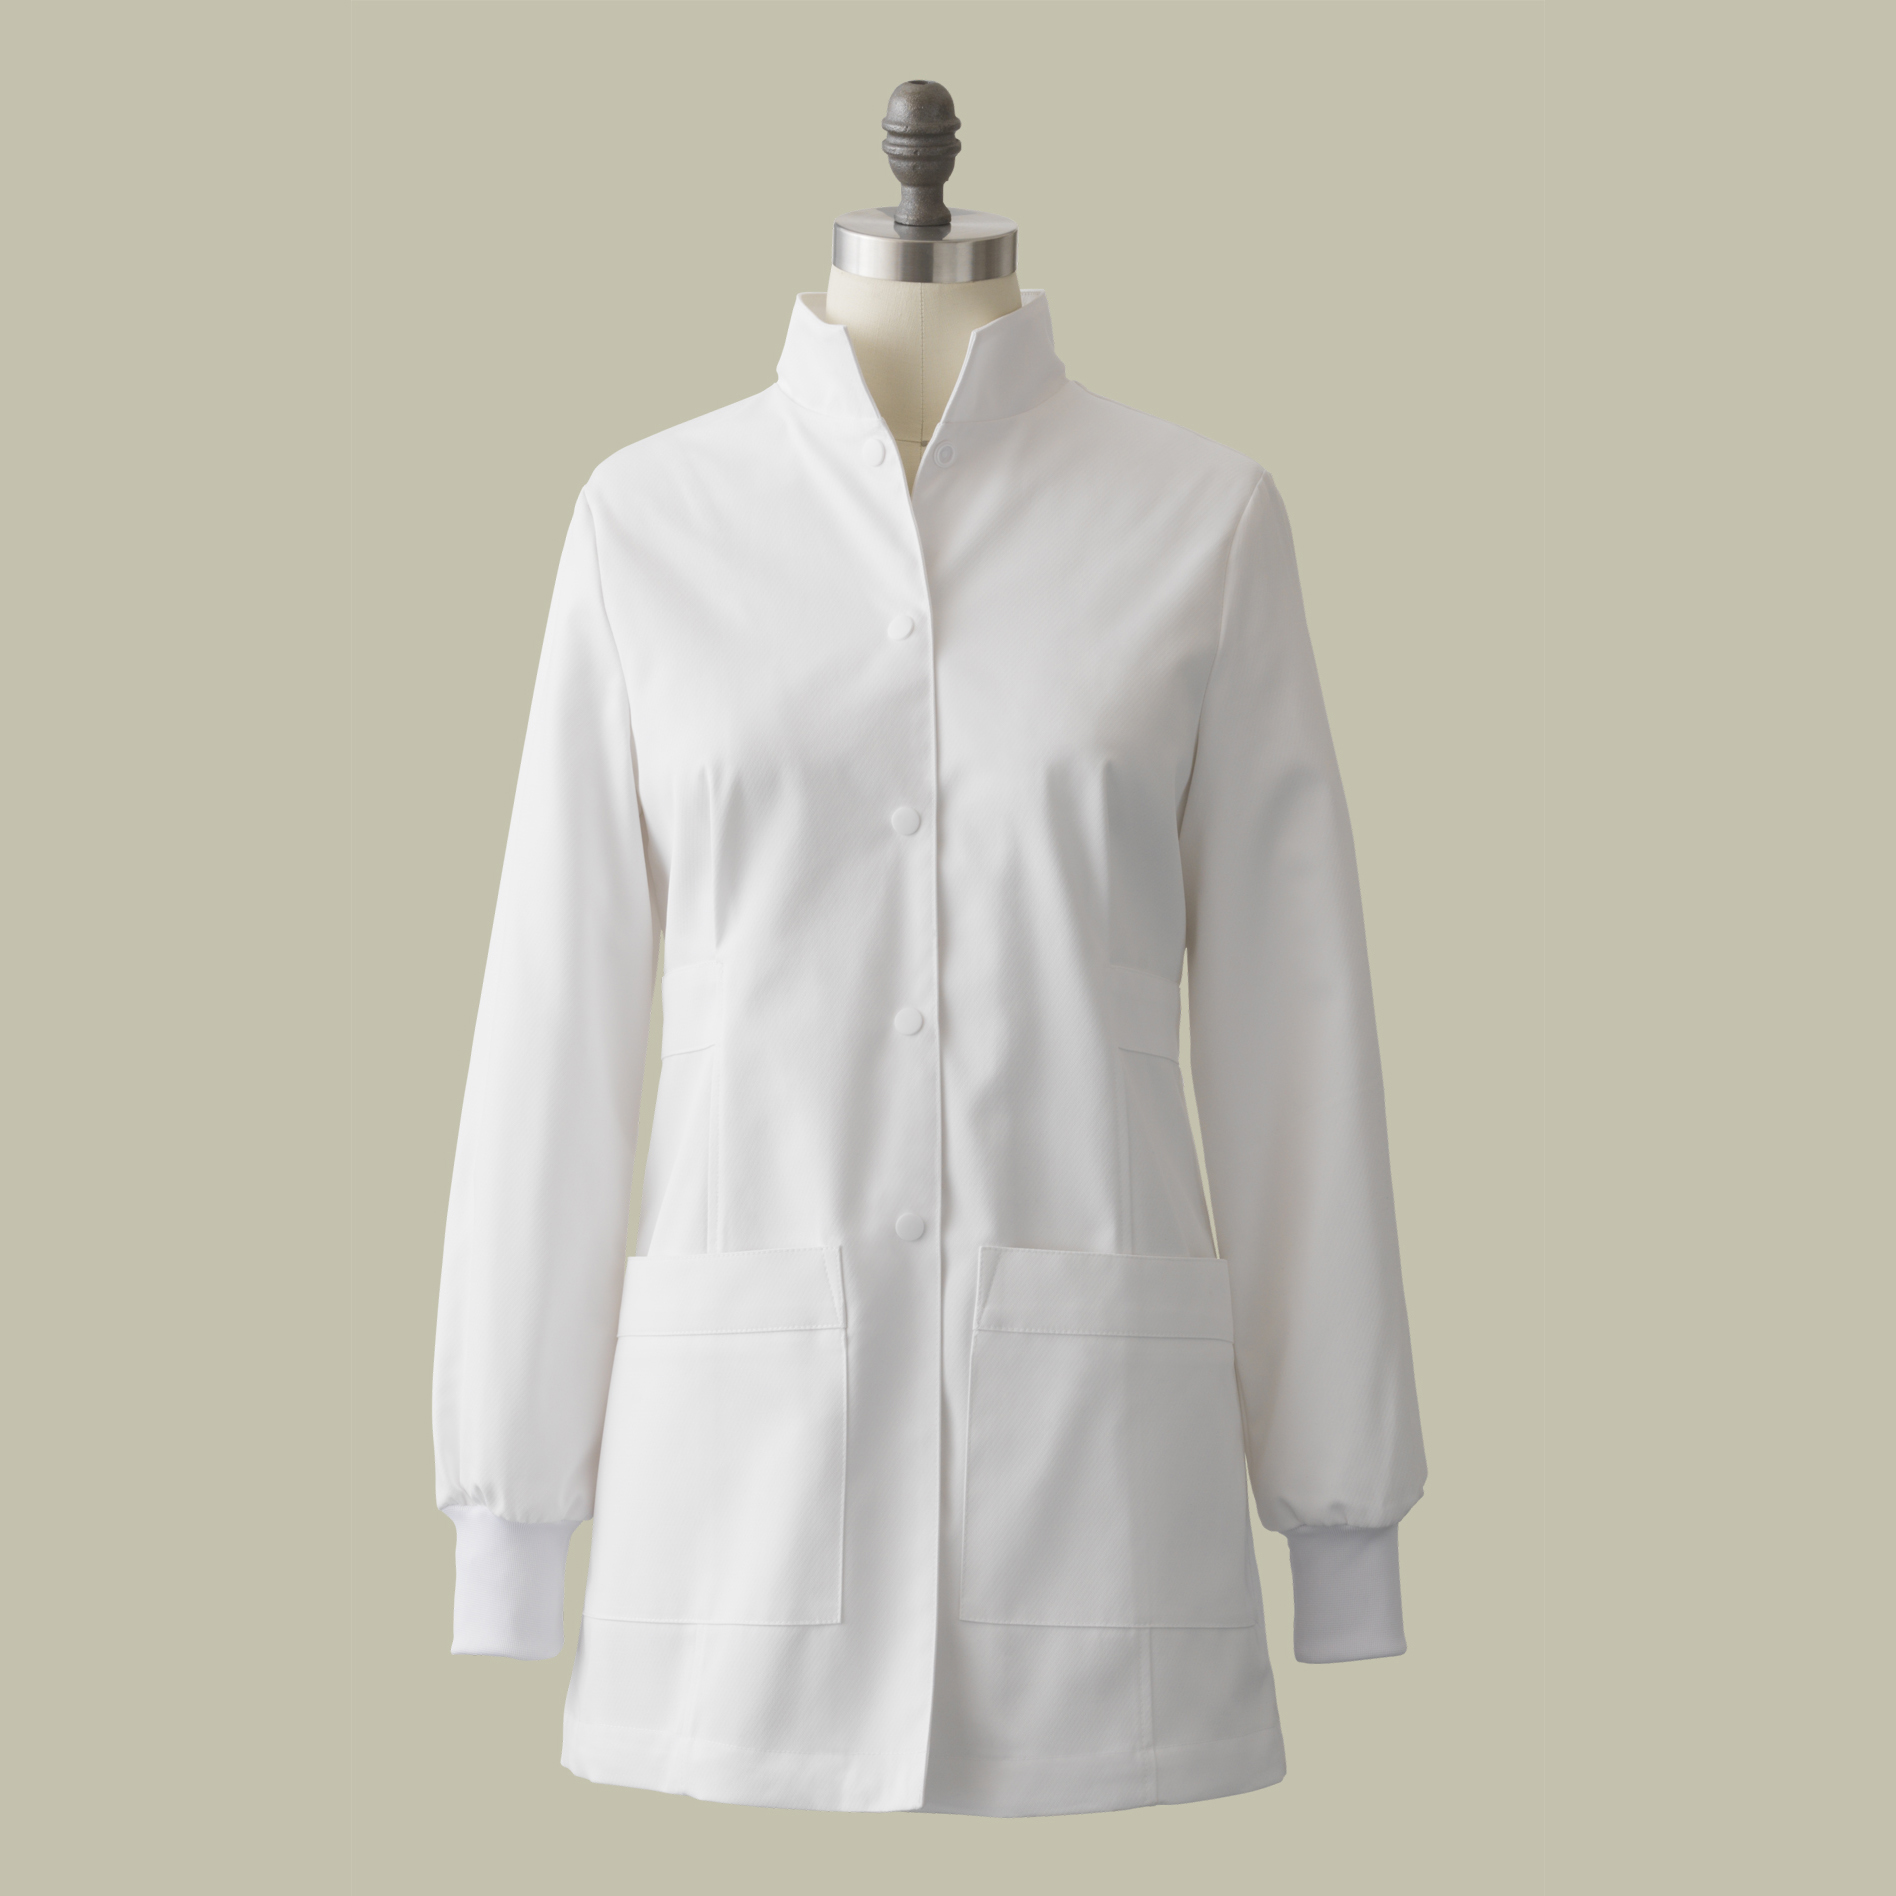 Medelita | Medelita Elsie G. Women's Lab Coat | Dental Product Shopper